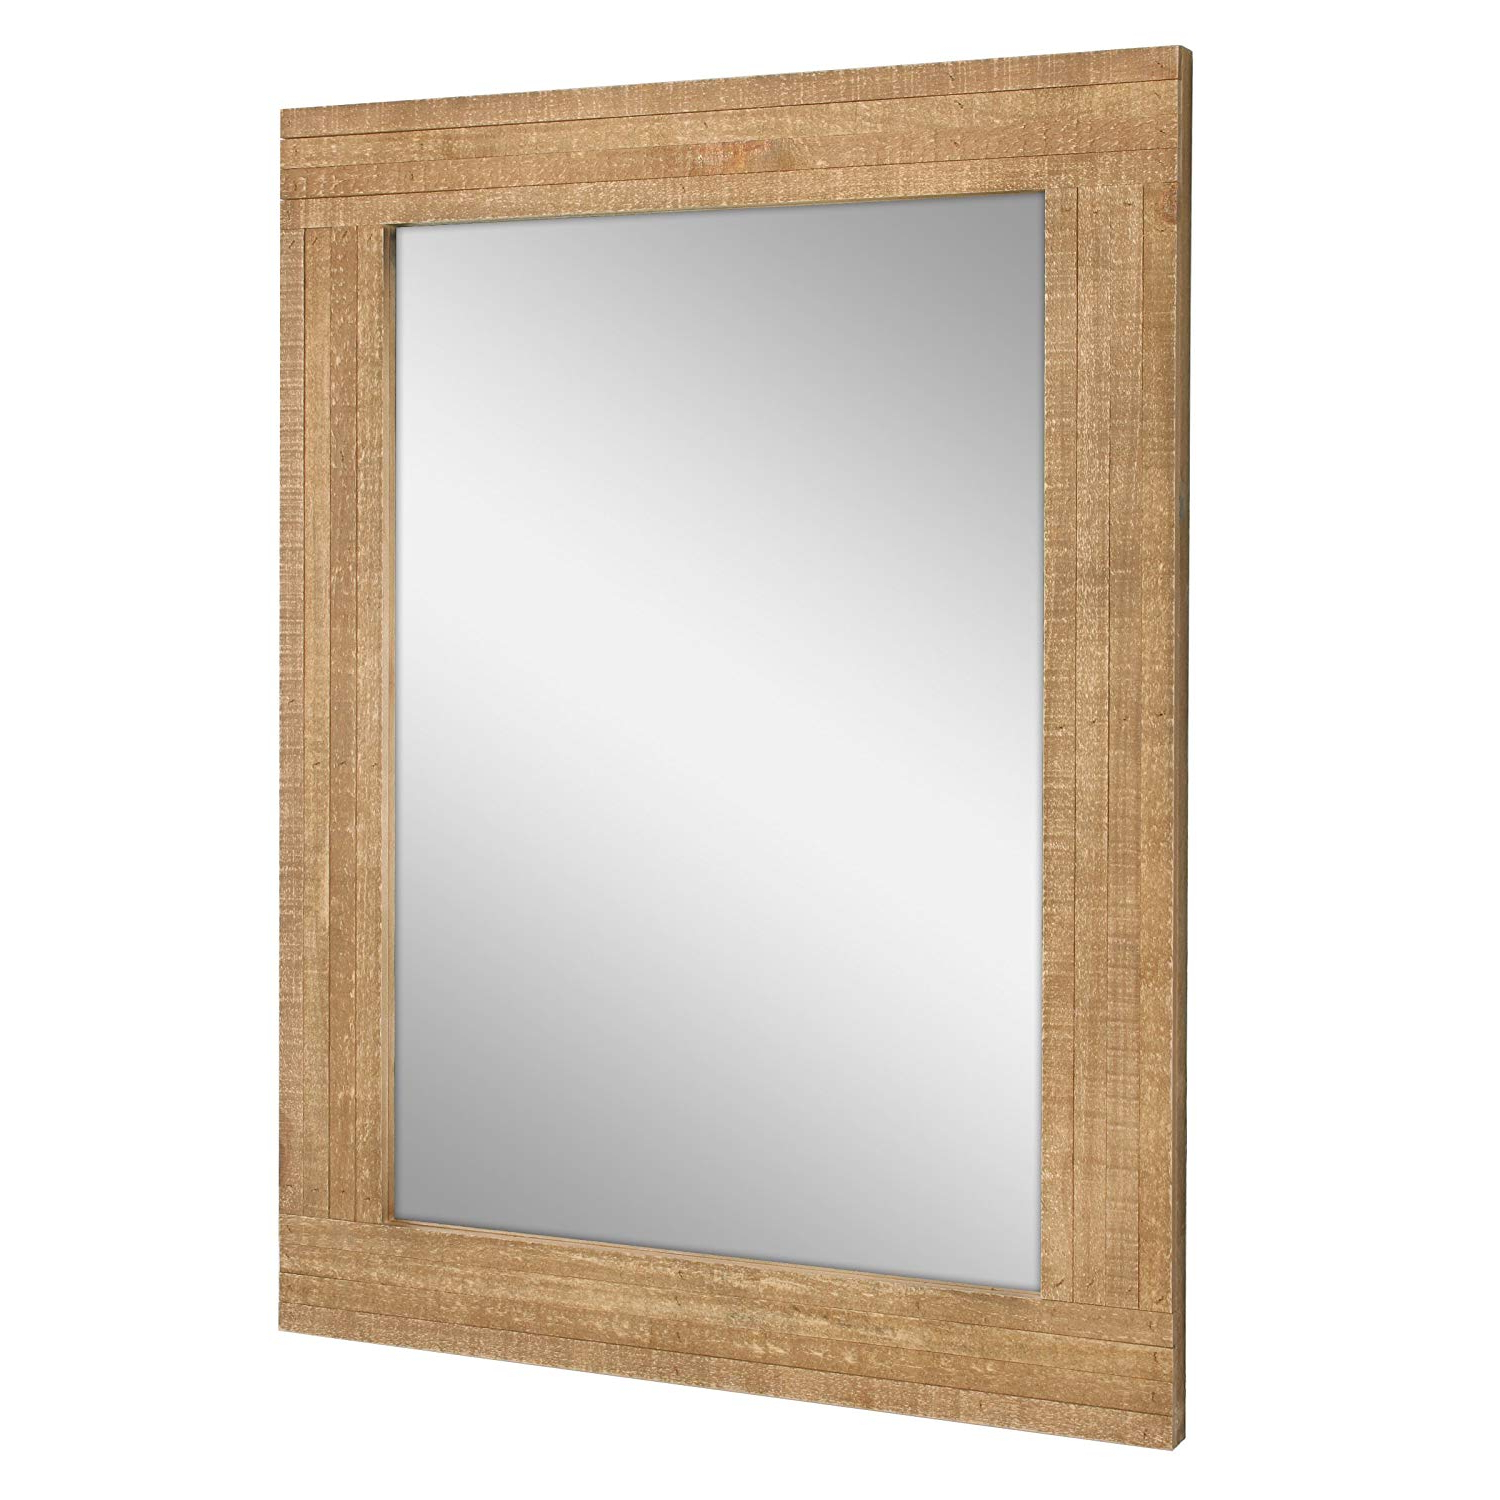 Stonebriar Rustic Rectangular Natural Wood Frame Hanging Wall Mirror,  Farmhouse Decor For The Living Room, Bedroom, Bathroom, Office, And Entryway Regarding Trendy Hanging Wall Mirrors For Bathroom (Gallery 3 of 20)